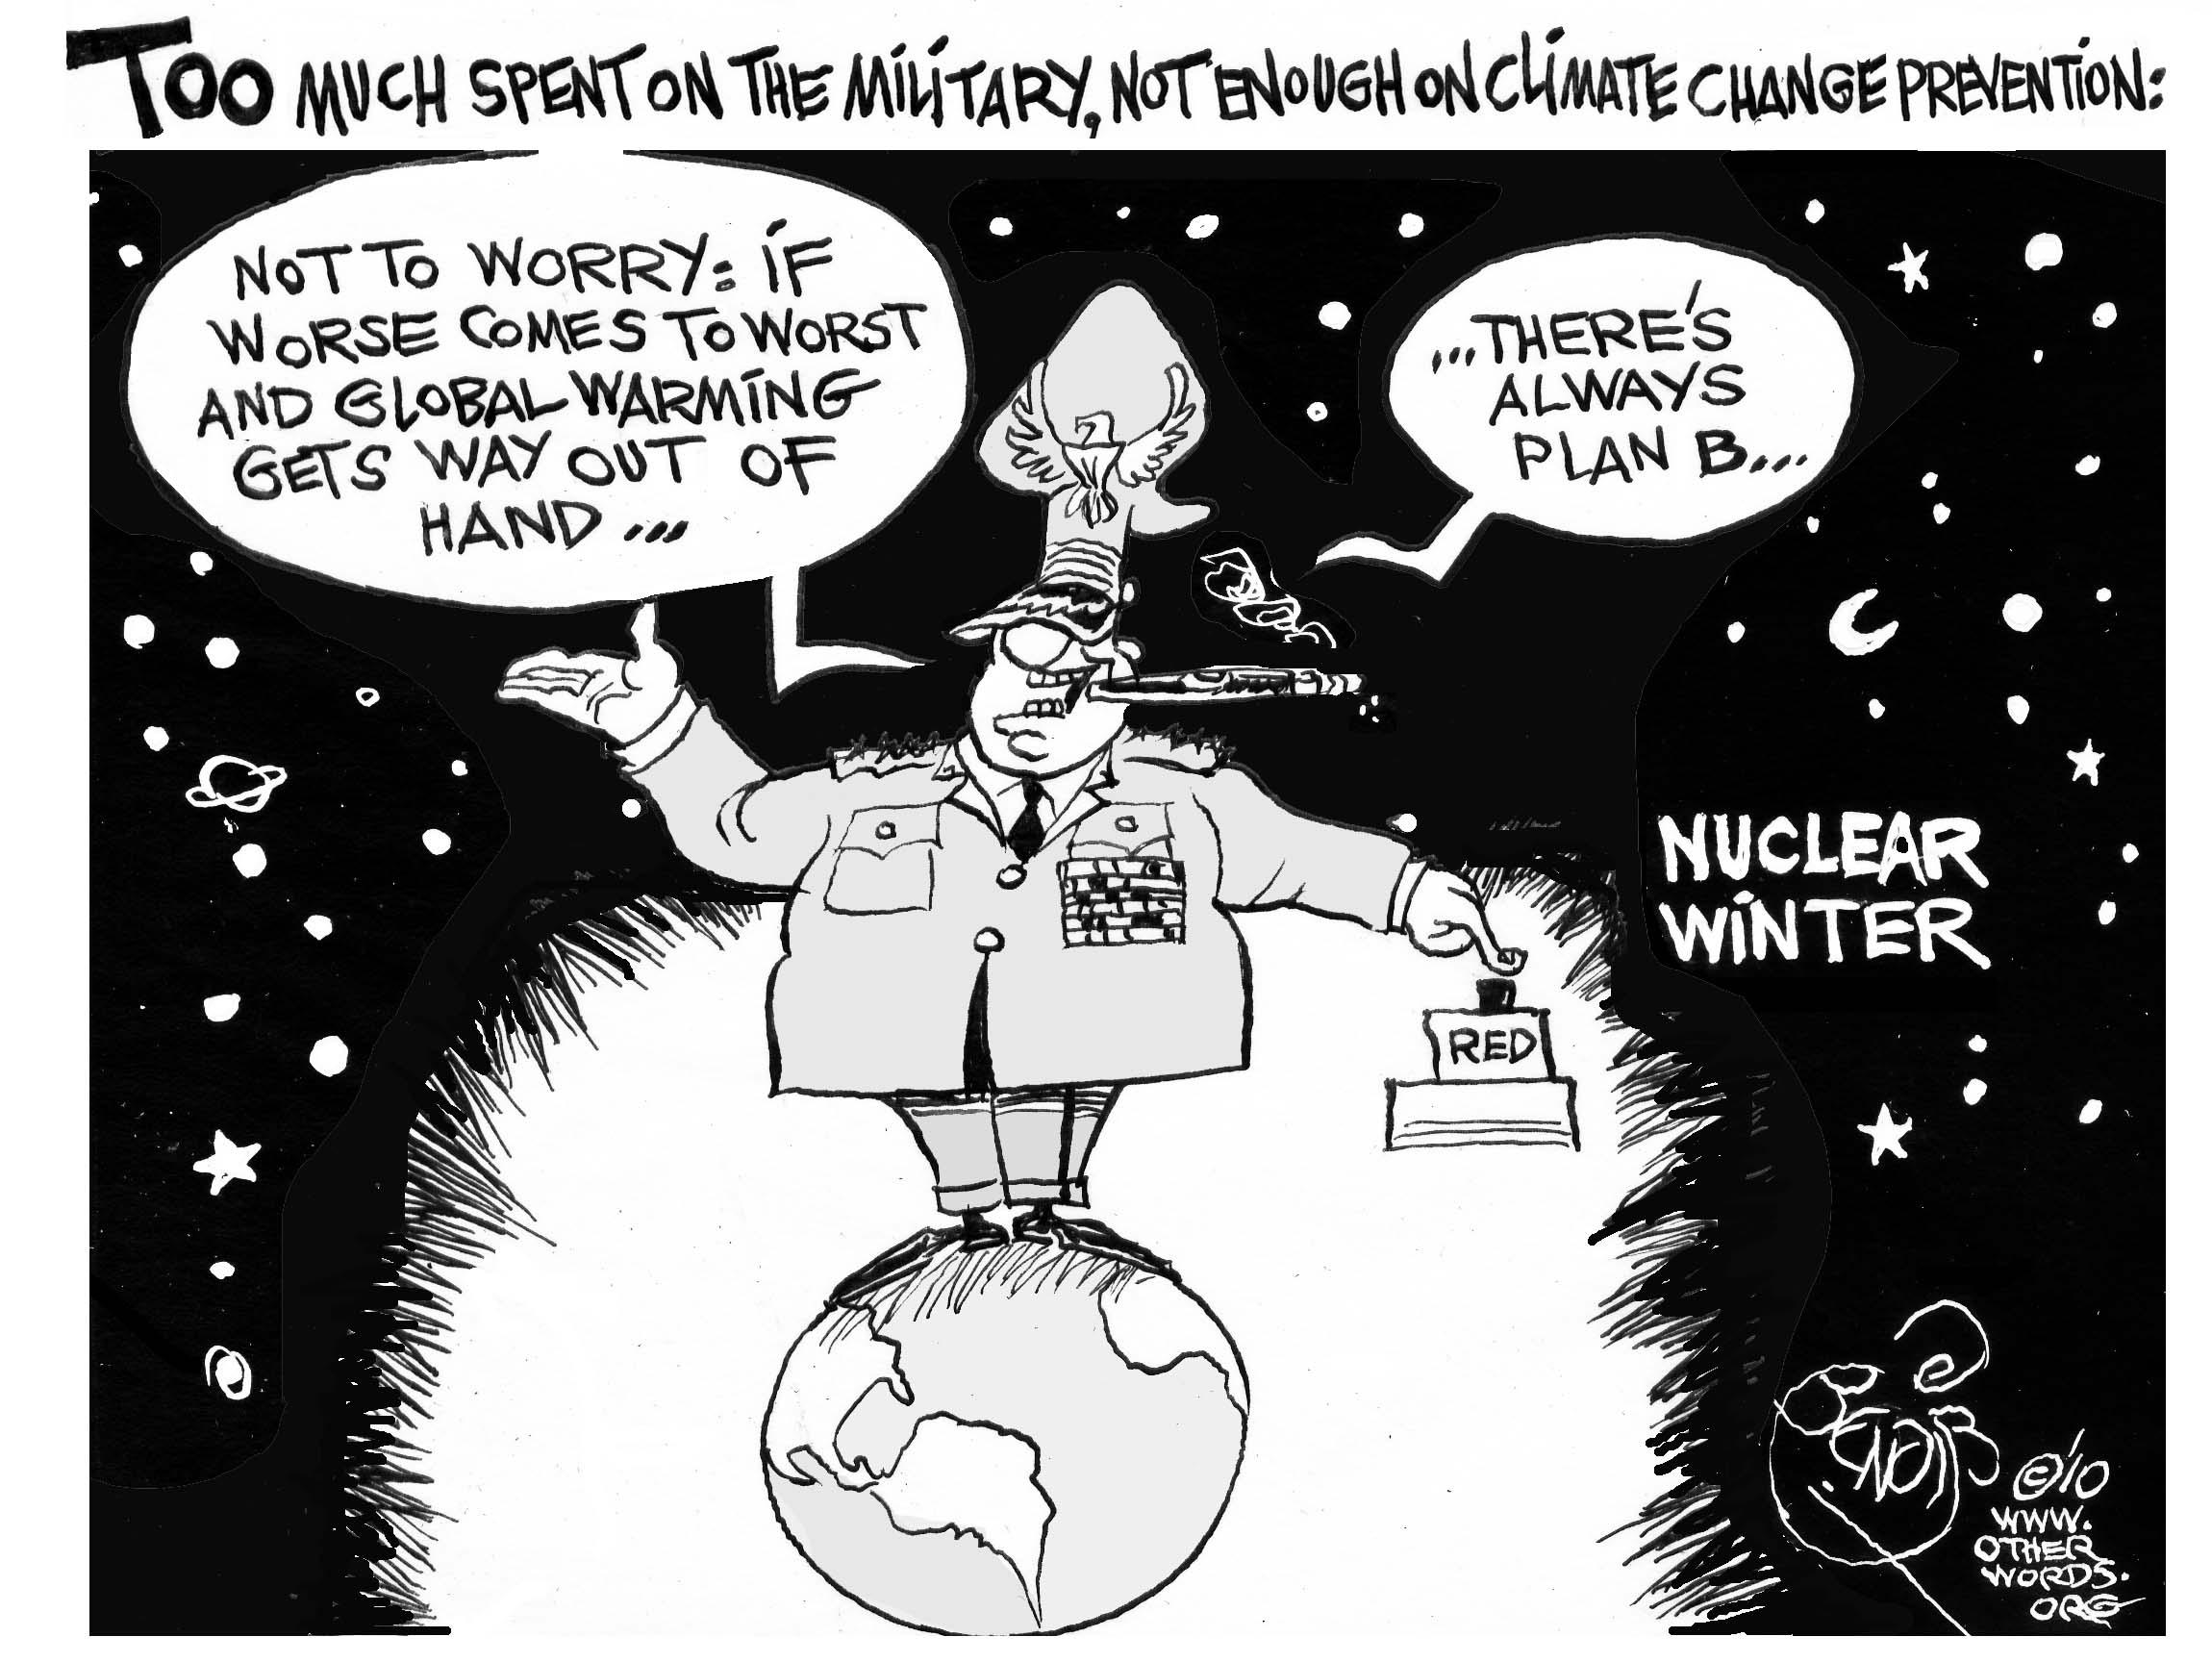 Spend More on the Climate, Less on the Military